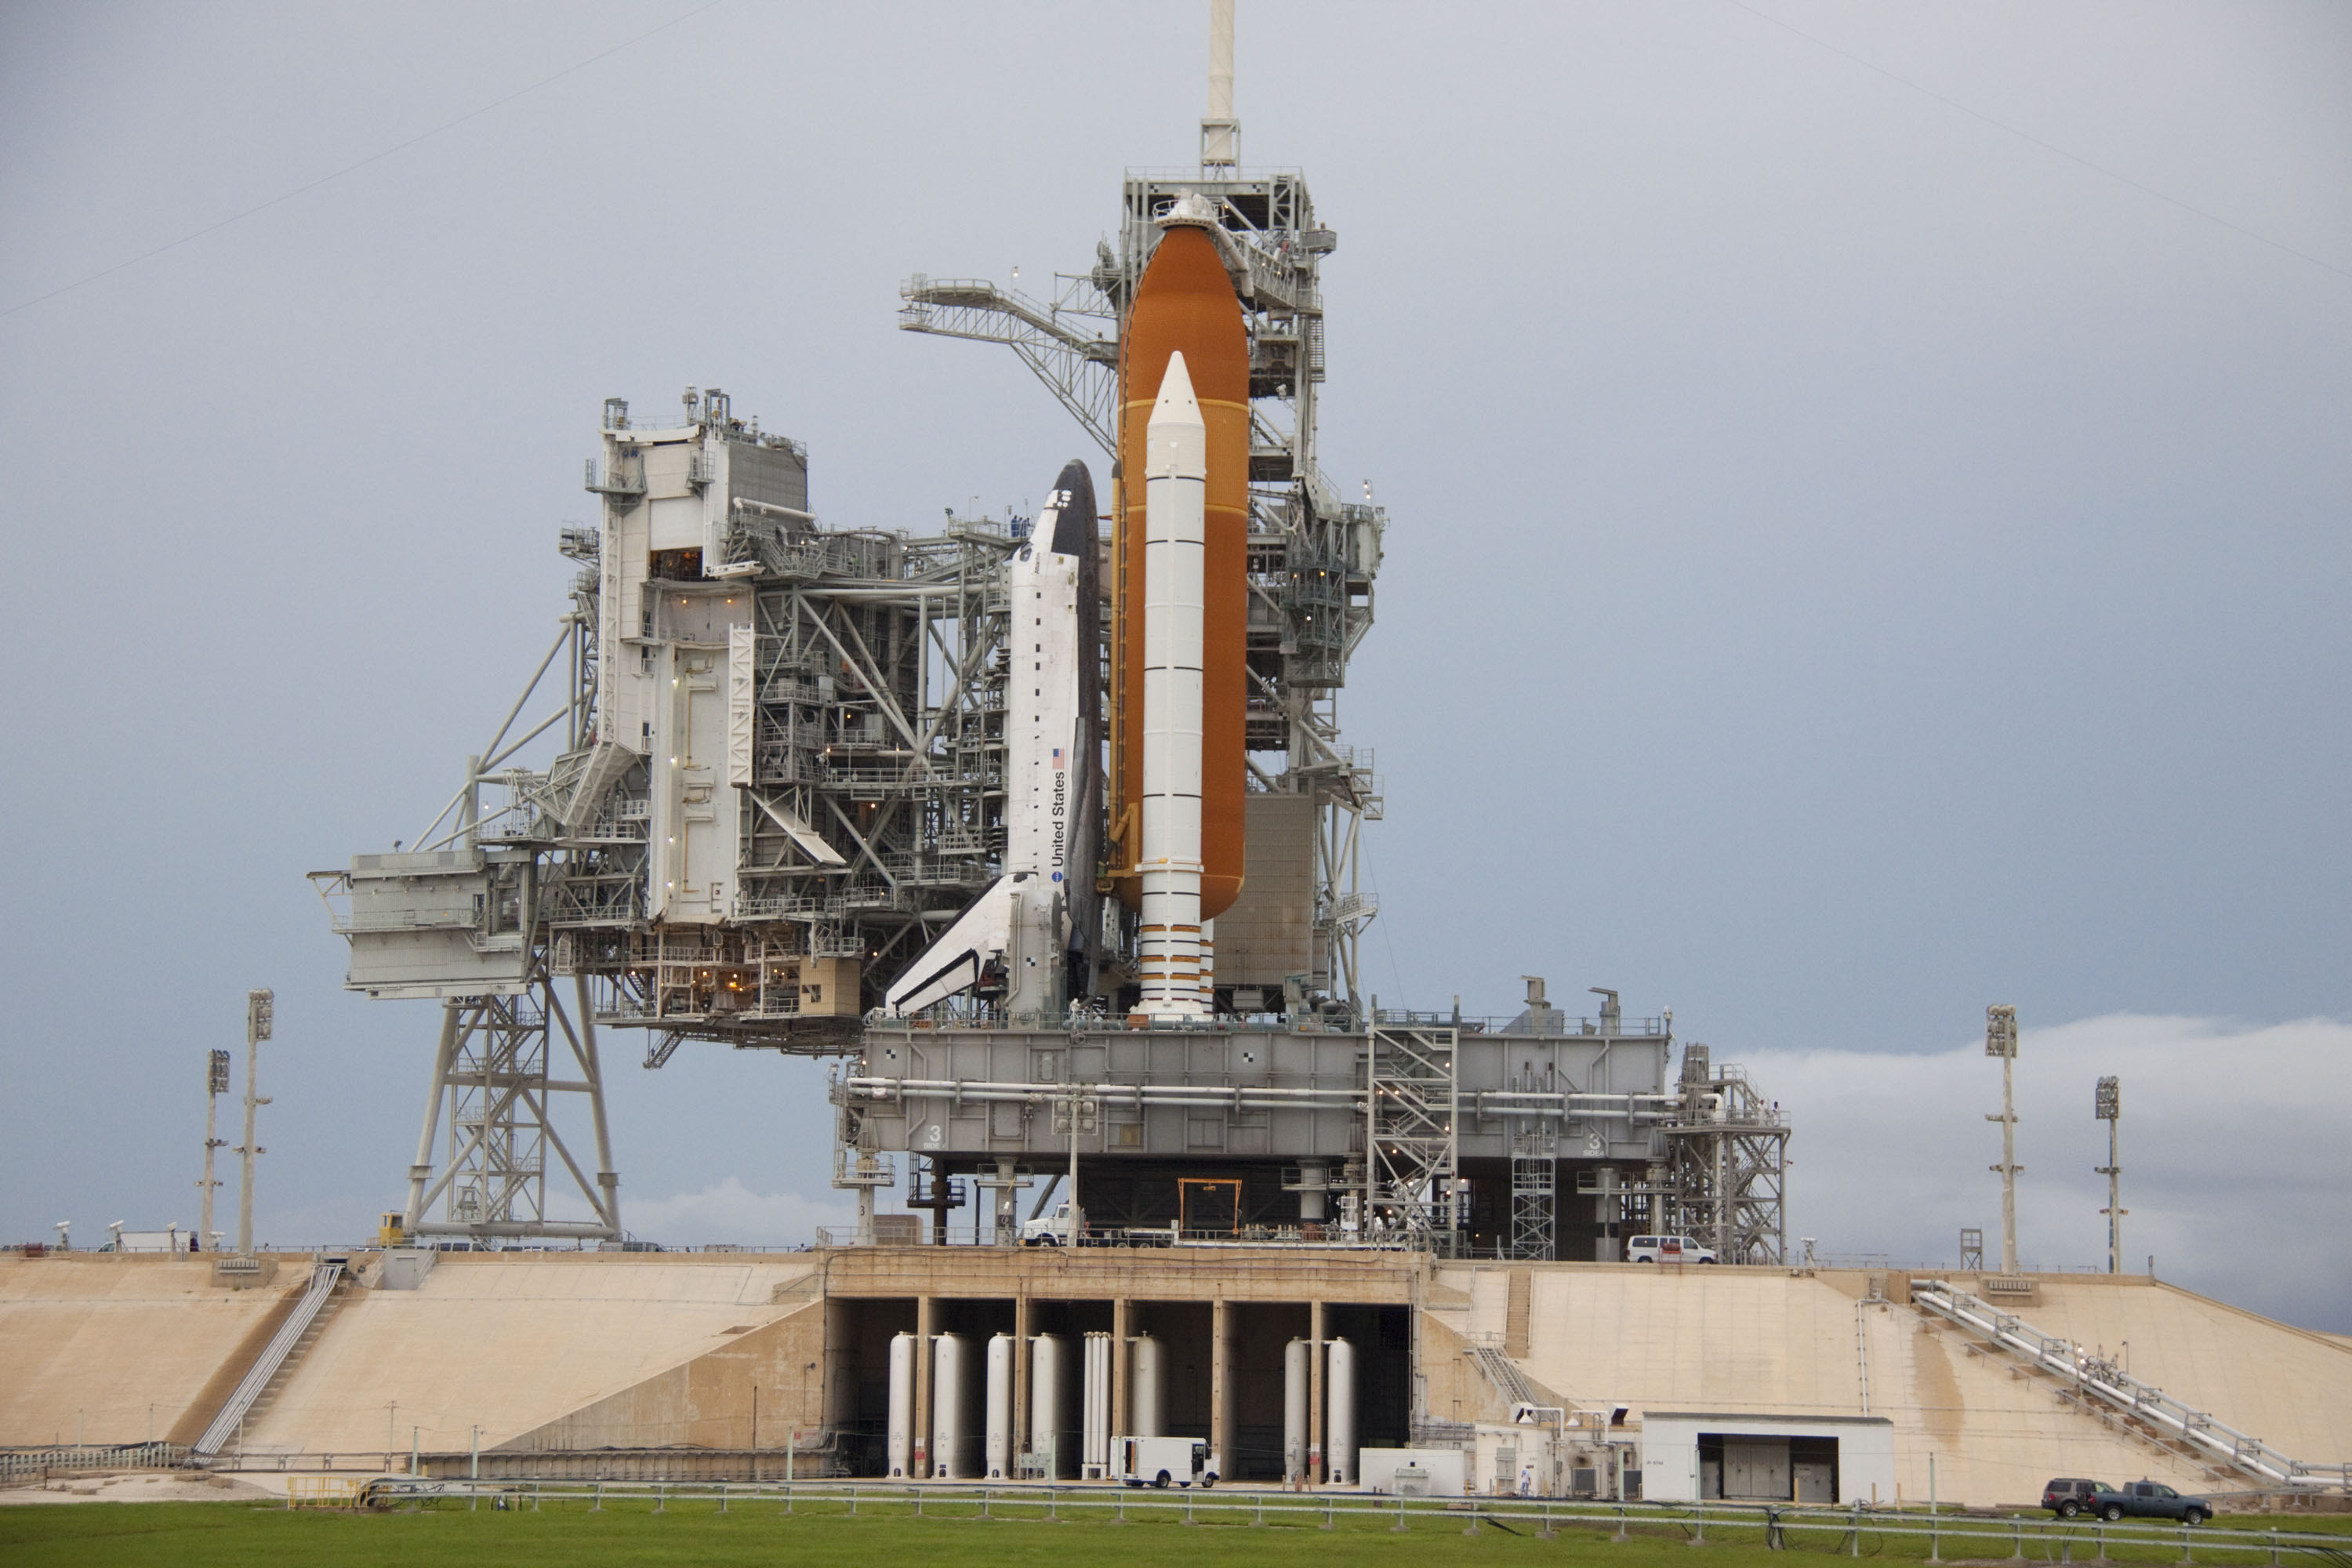 Pad 39A Flame Trench Query : SpaceXLounge